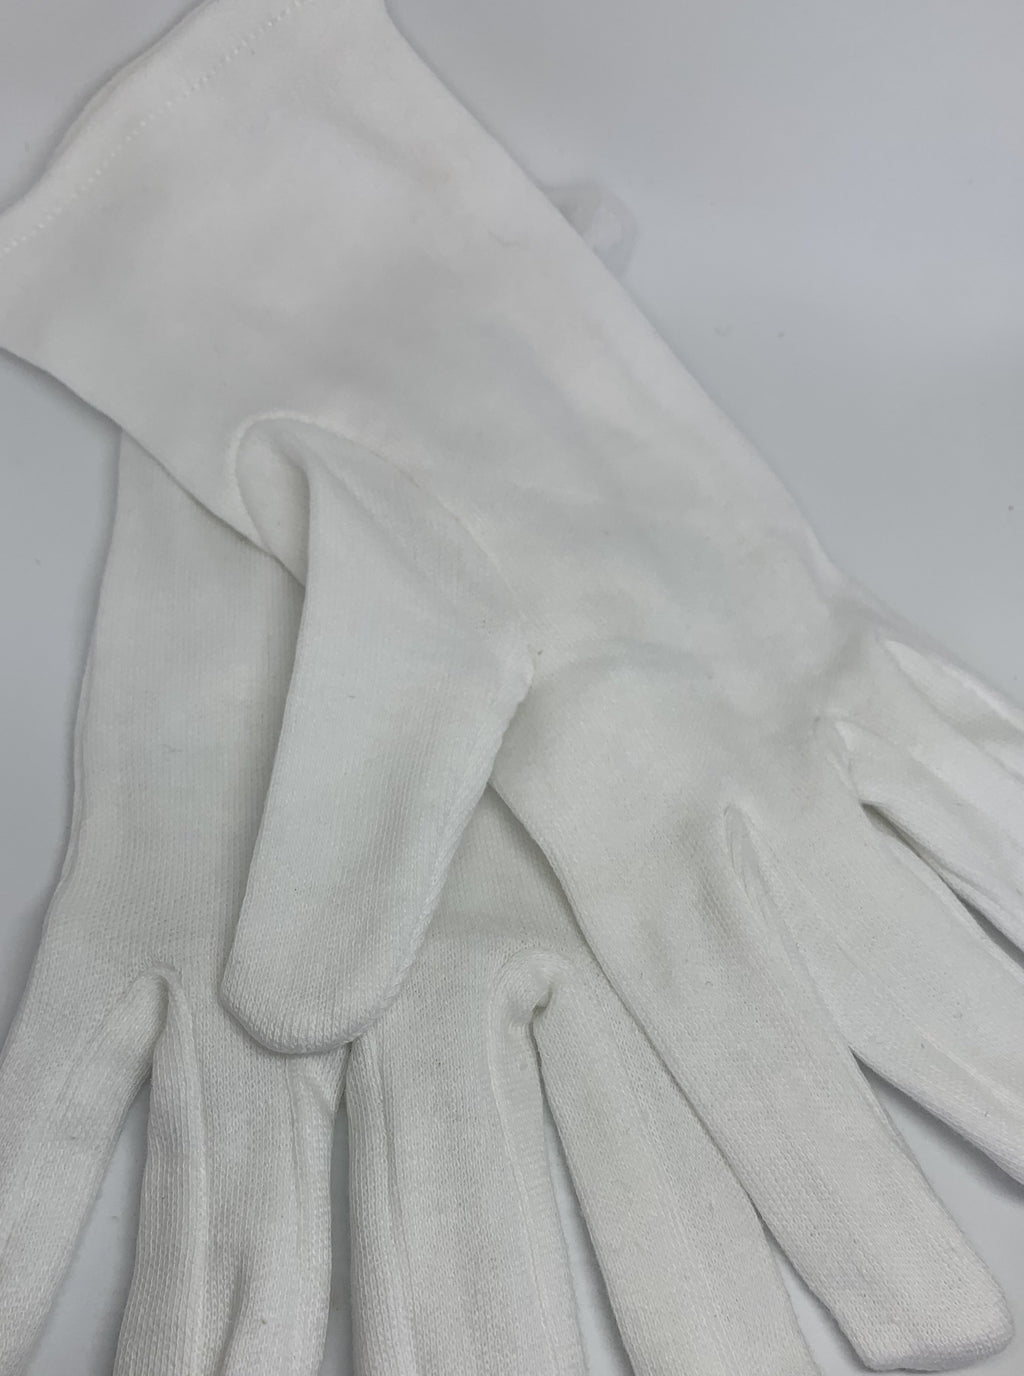 100% Organic Cotton Gloves for intensive skin treatment + protection- by Sano + Humano